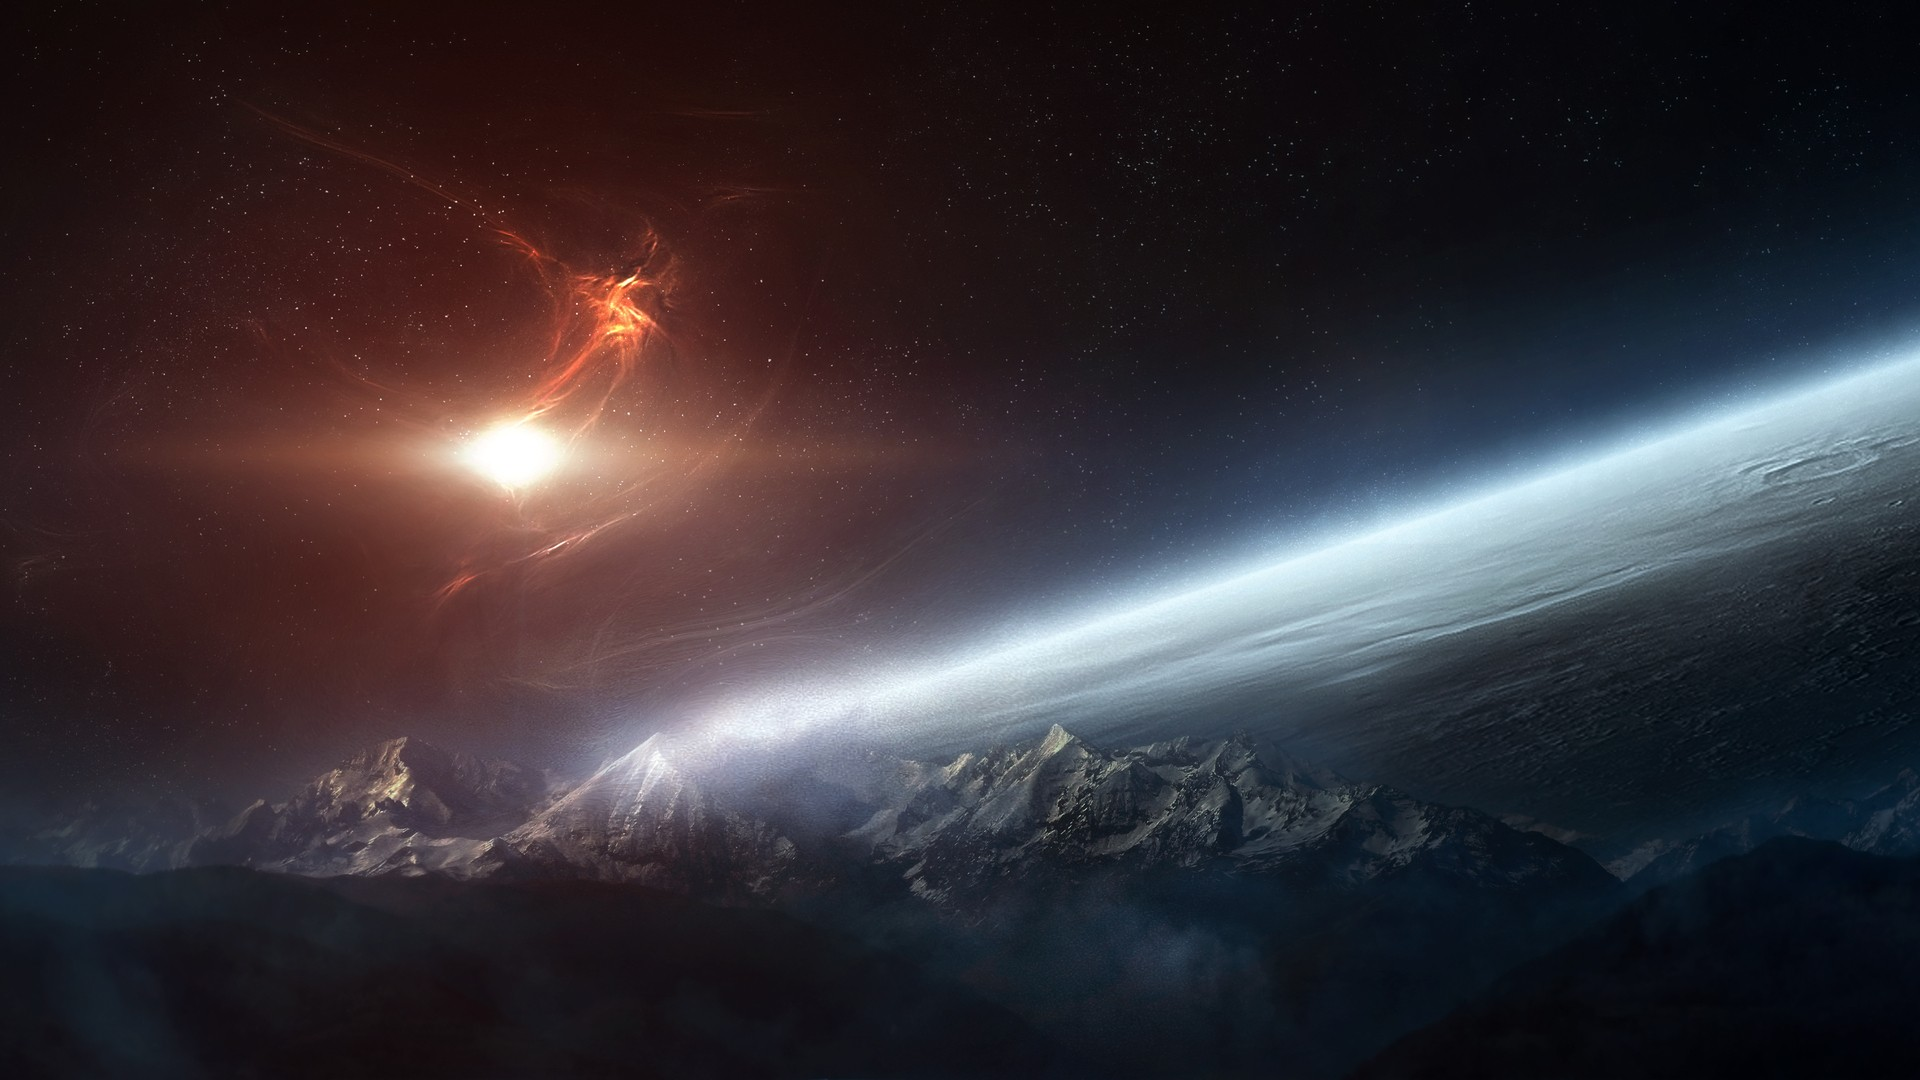 Mountains Outer Space HD Wallpaper FullHDWpp   Full HD Wallpapers 1920x1080